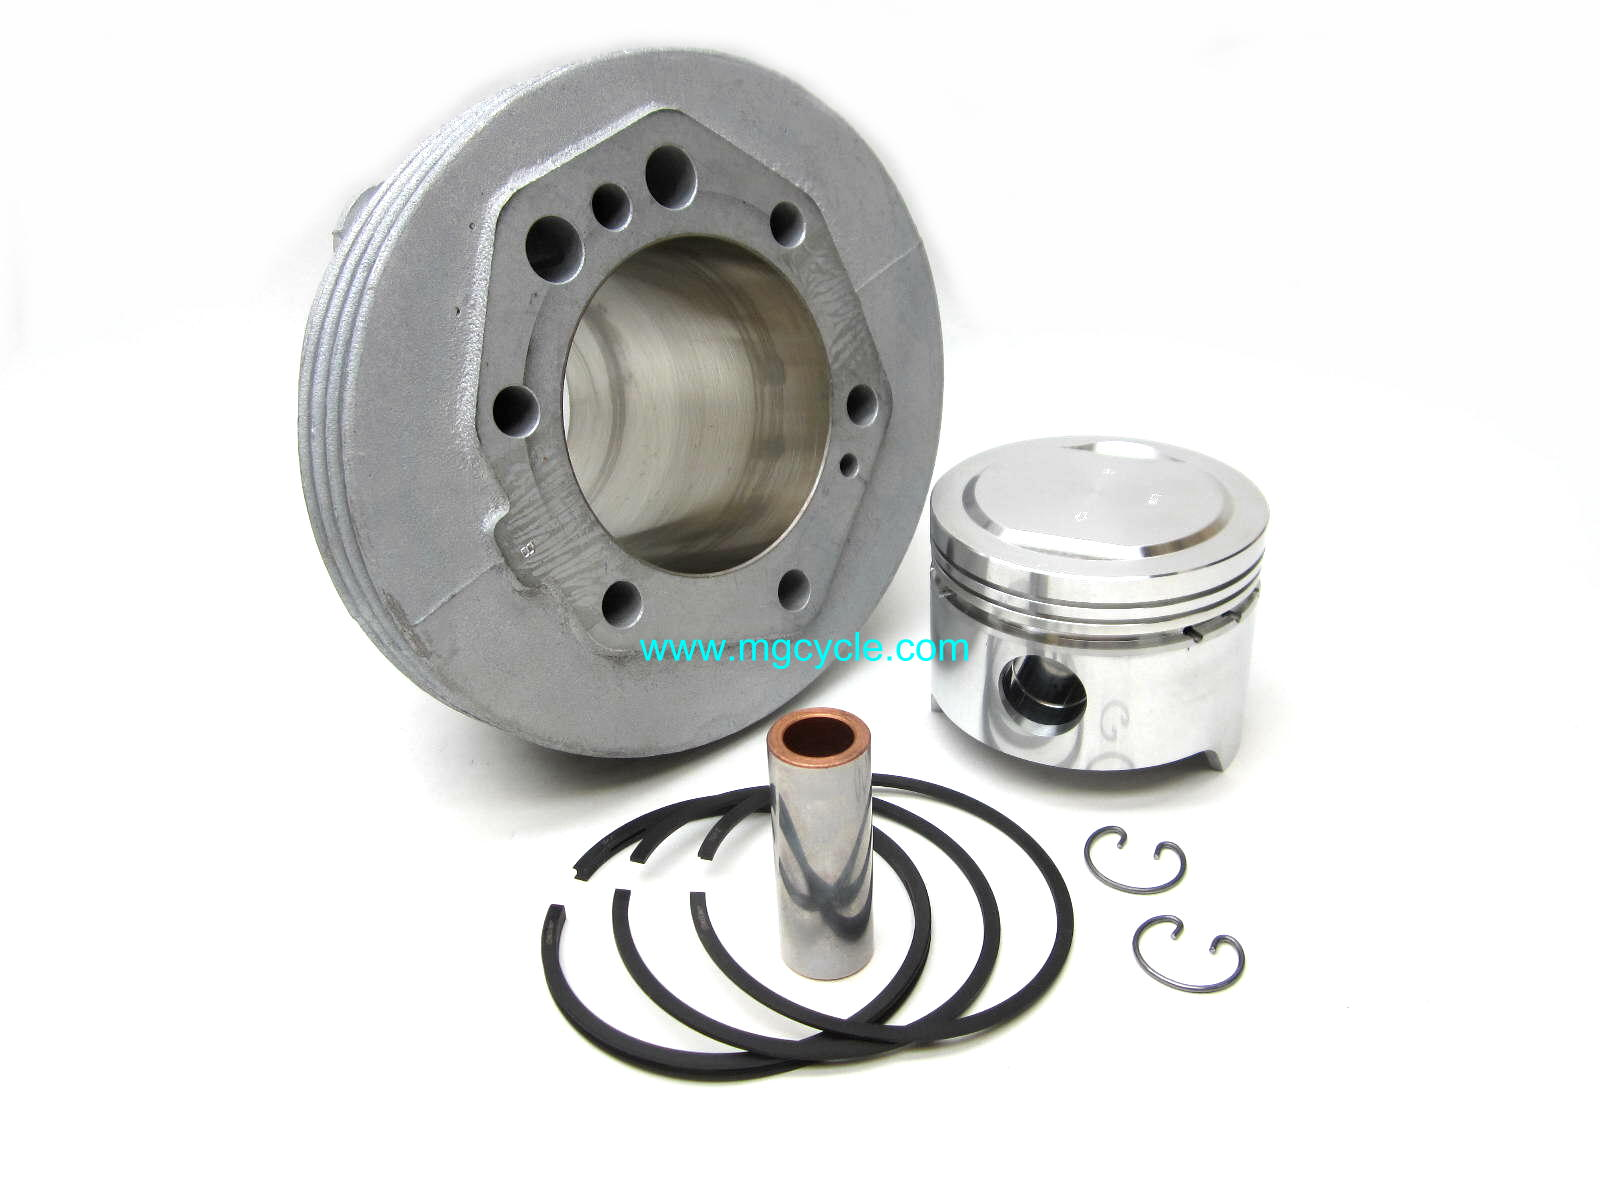 949cc Piston & Cylinder set for 850 T3